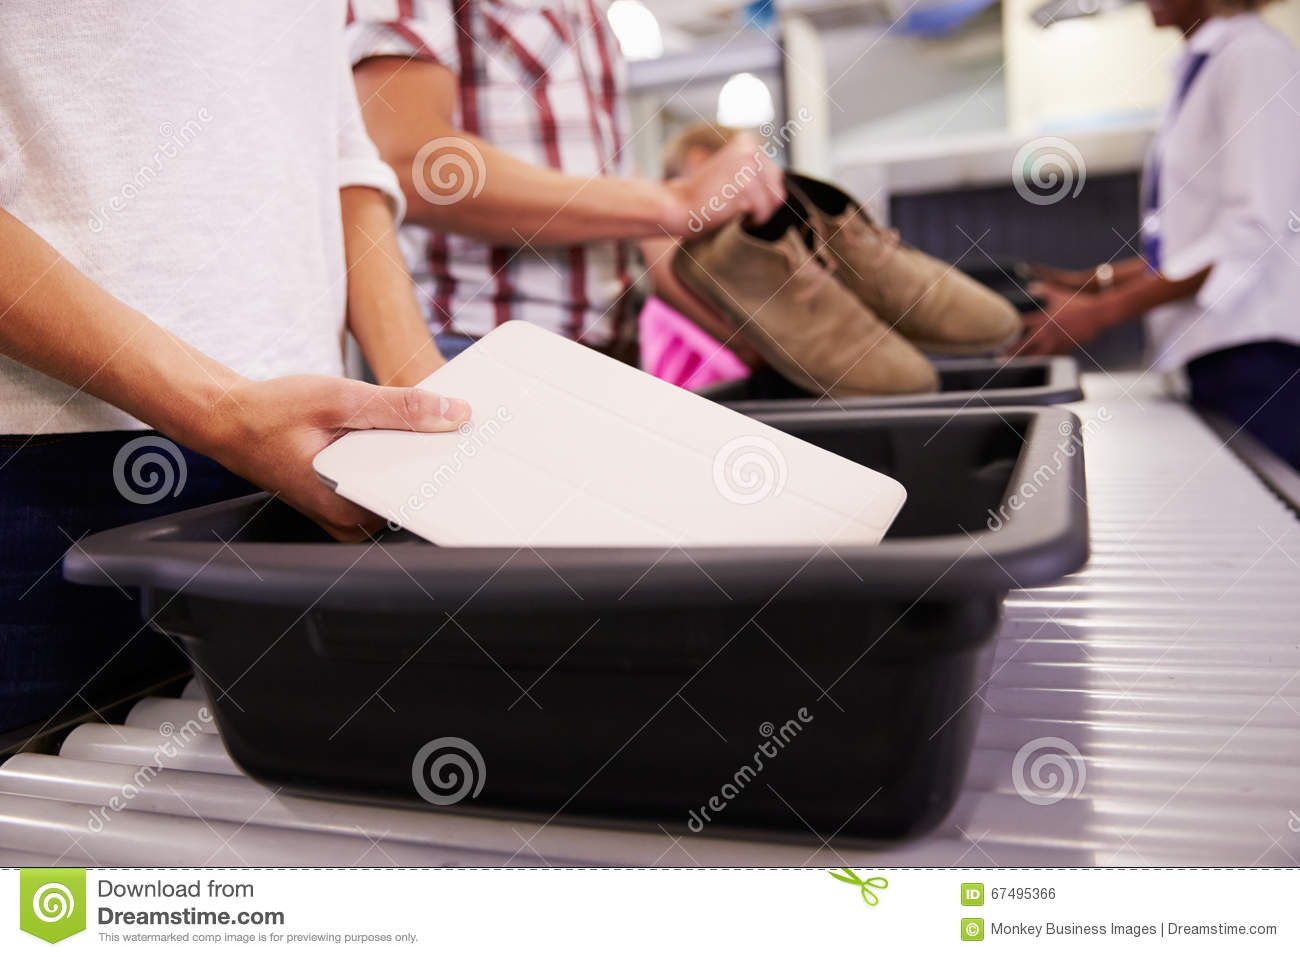 Angry man checks into airport clipart freeuse download Man Puts Digital Tablet Into Tray For Airport Security Check Stock ... freeuse download